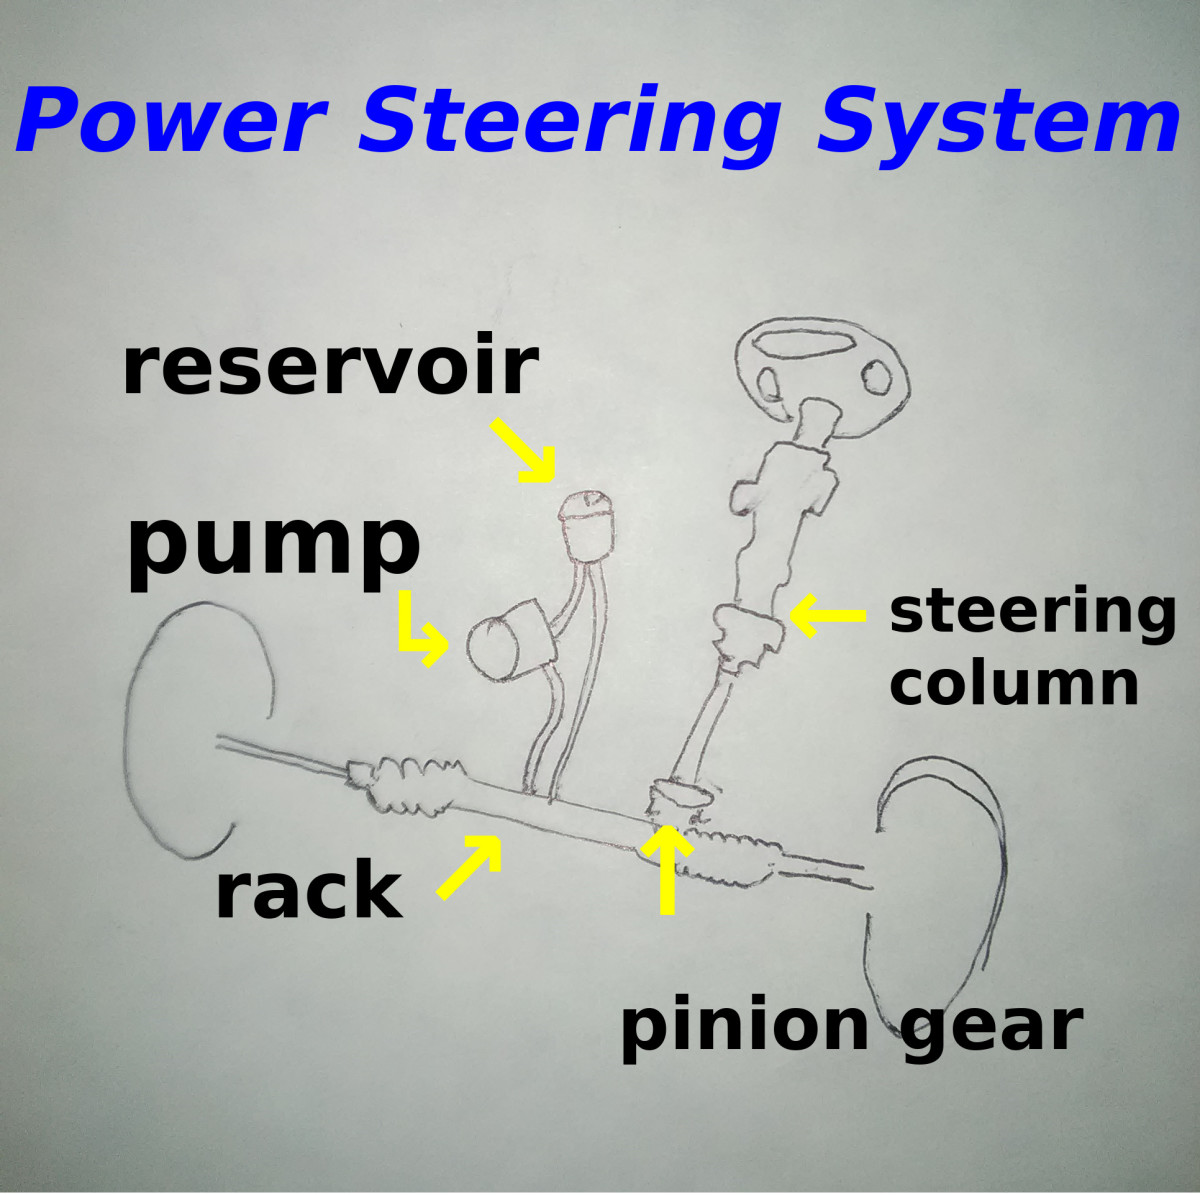 Tips for Finding and Repairing Power Steering Leaks